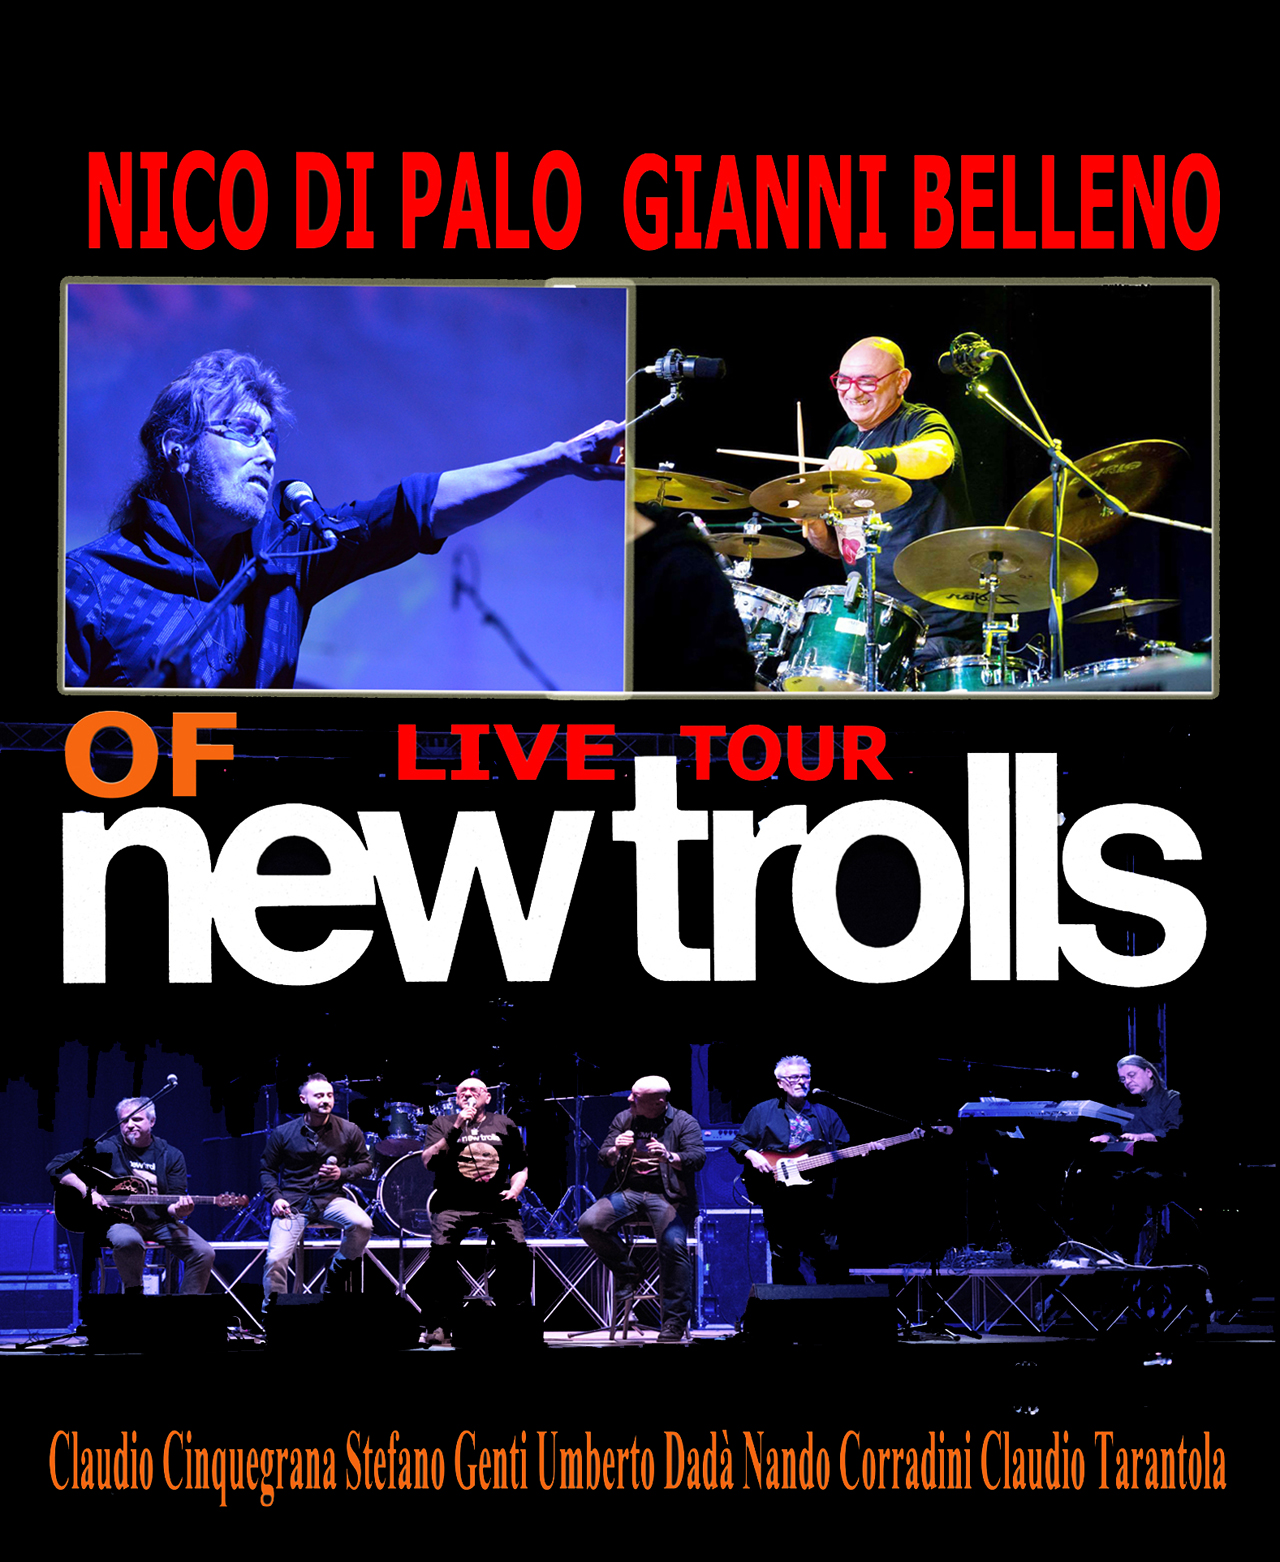 New Trolls, contatti New Trolls, management New Trolls, concerti New Trolls, agenzia New Trolls, ingaggio New Trolls, roster New Trolls, roster, 2018, booking New Trolls, booking, roster,